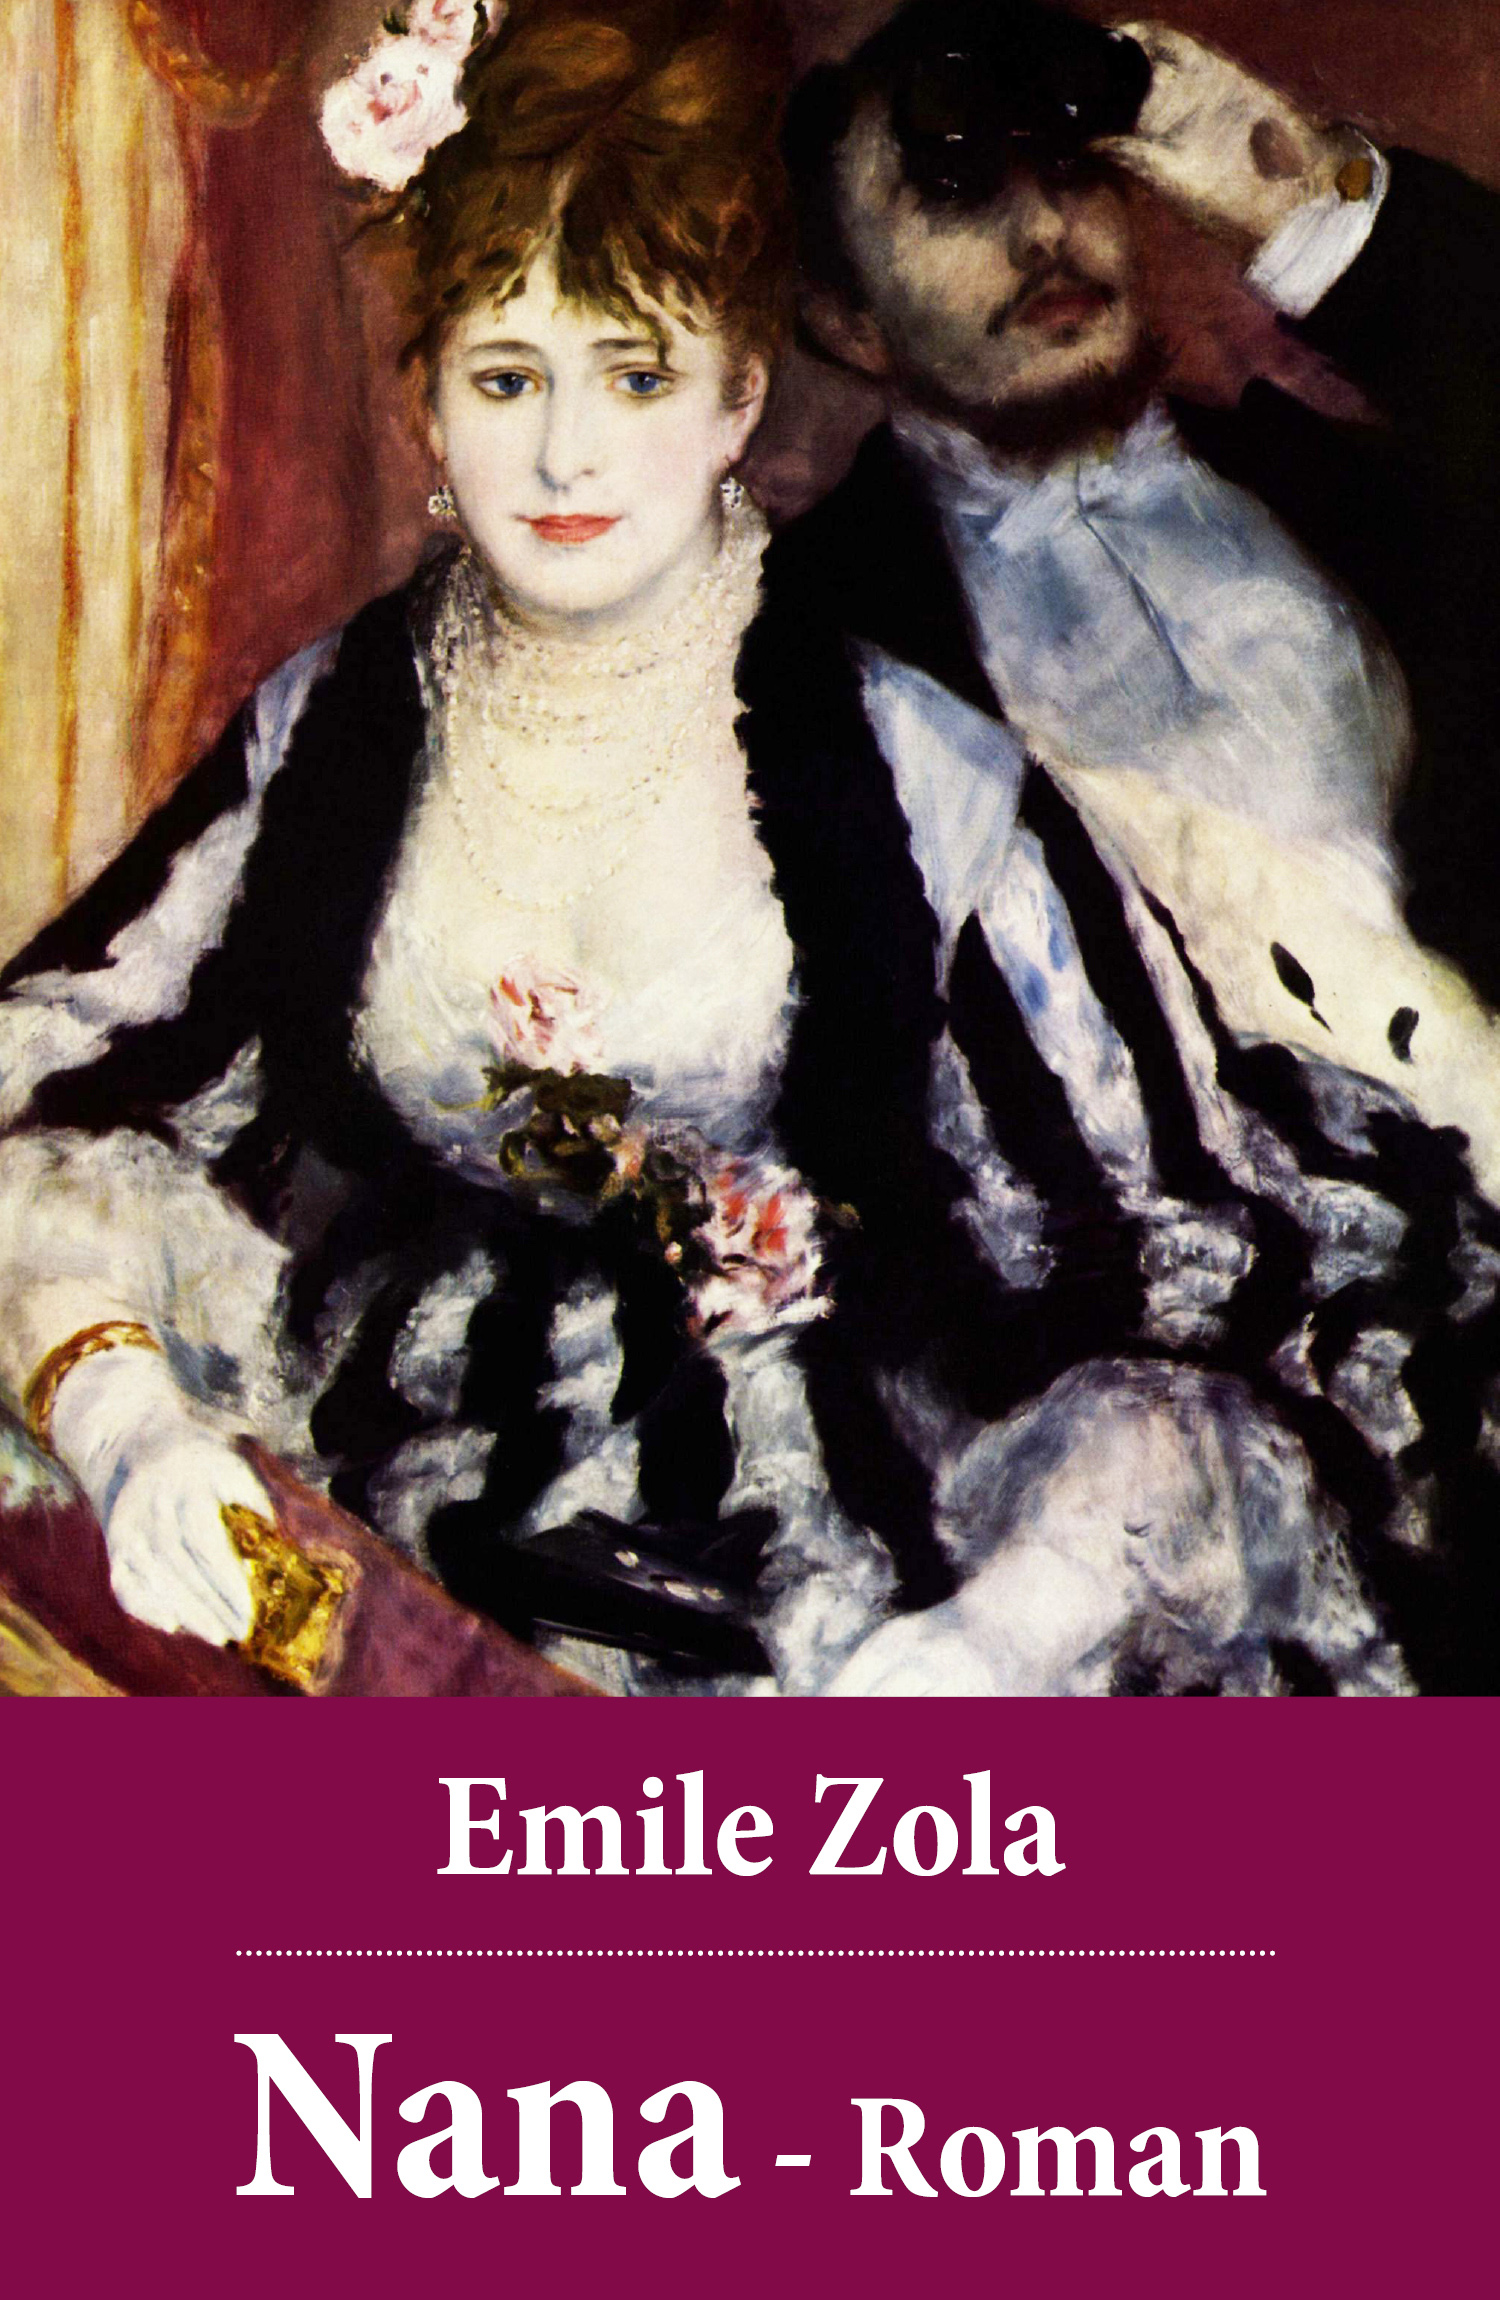 Emile Zola Emile Zola: Nana - Roman эмиль золя four short stories by emile zola